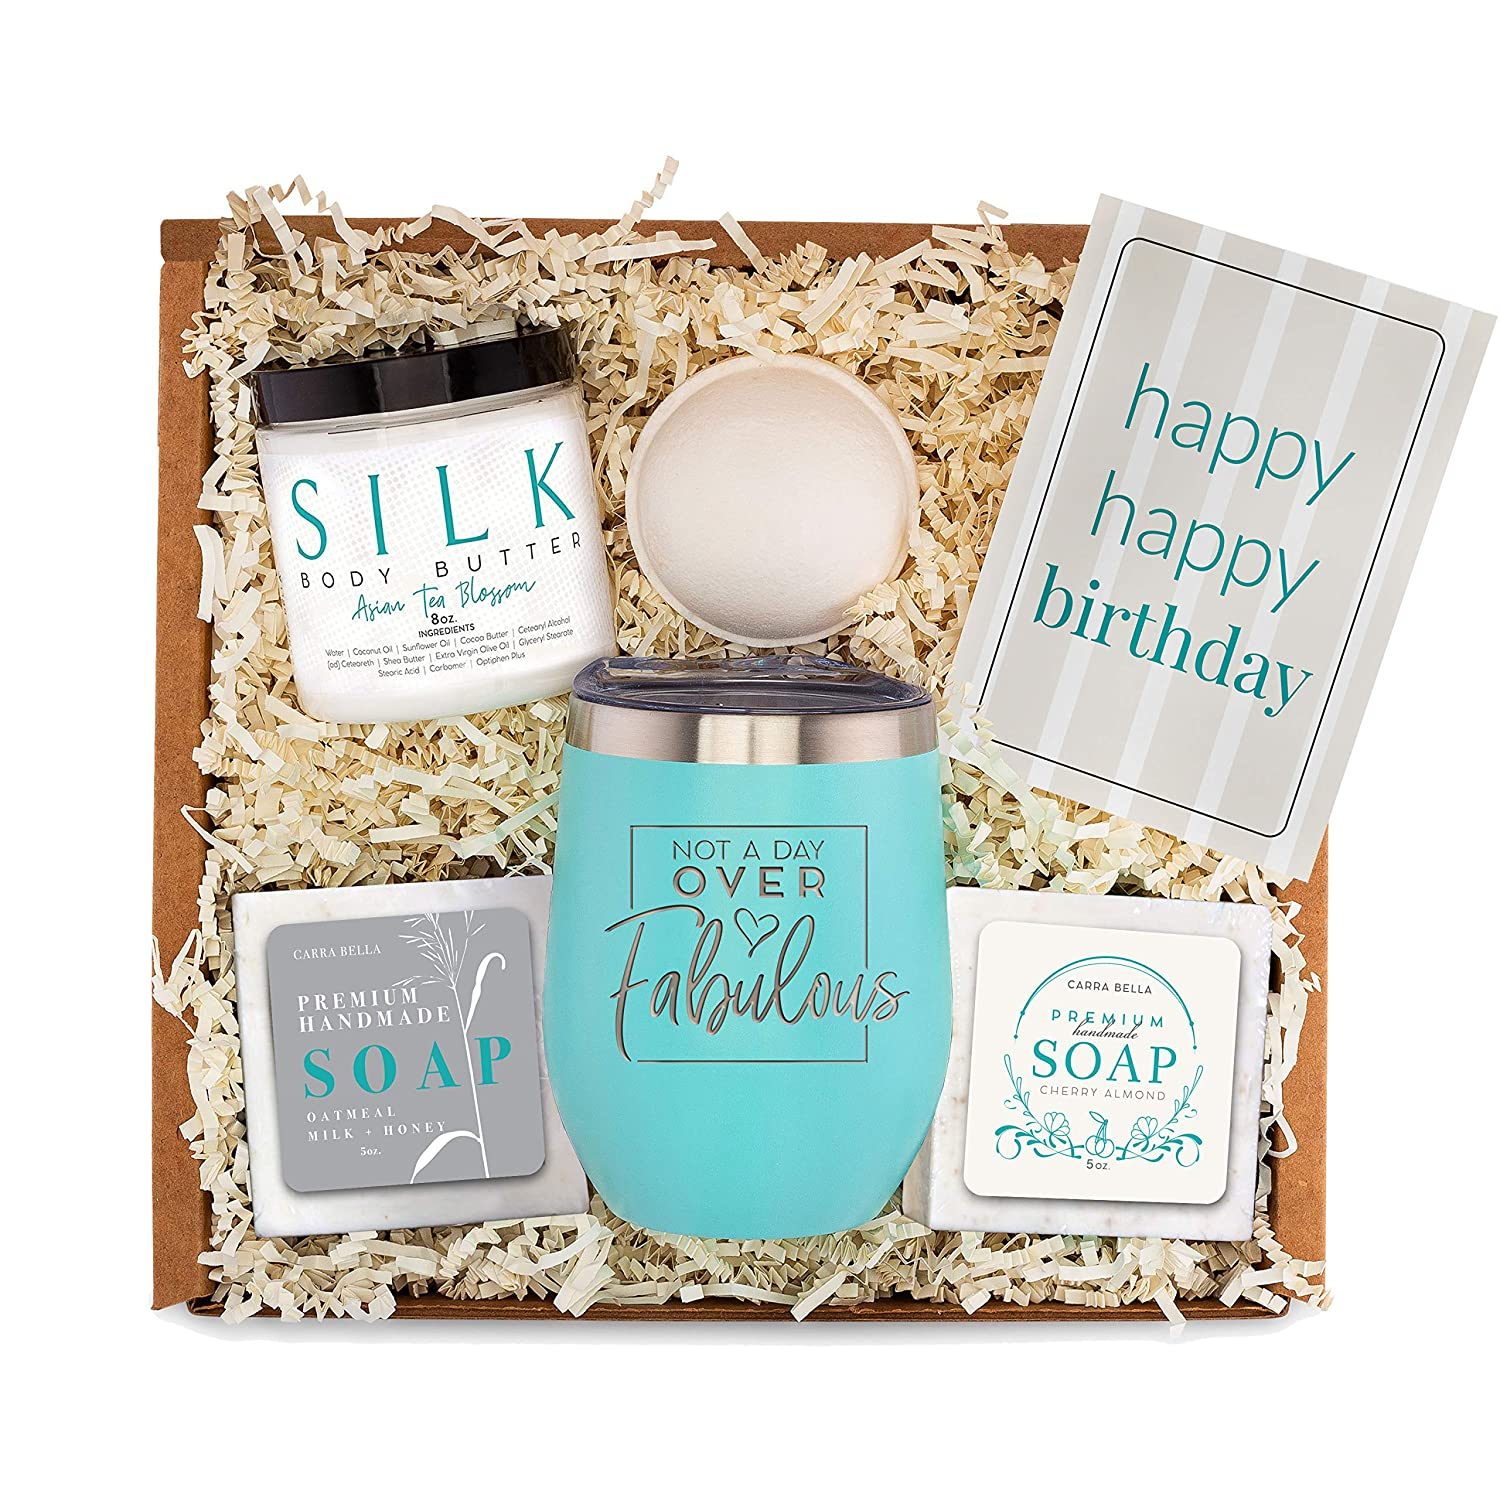 ladies birthday pamper care 7 items thank you mum sister friend in pretty box